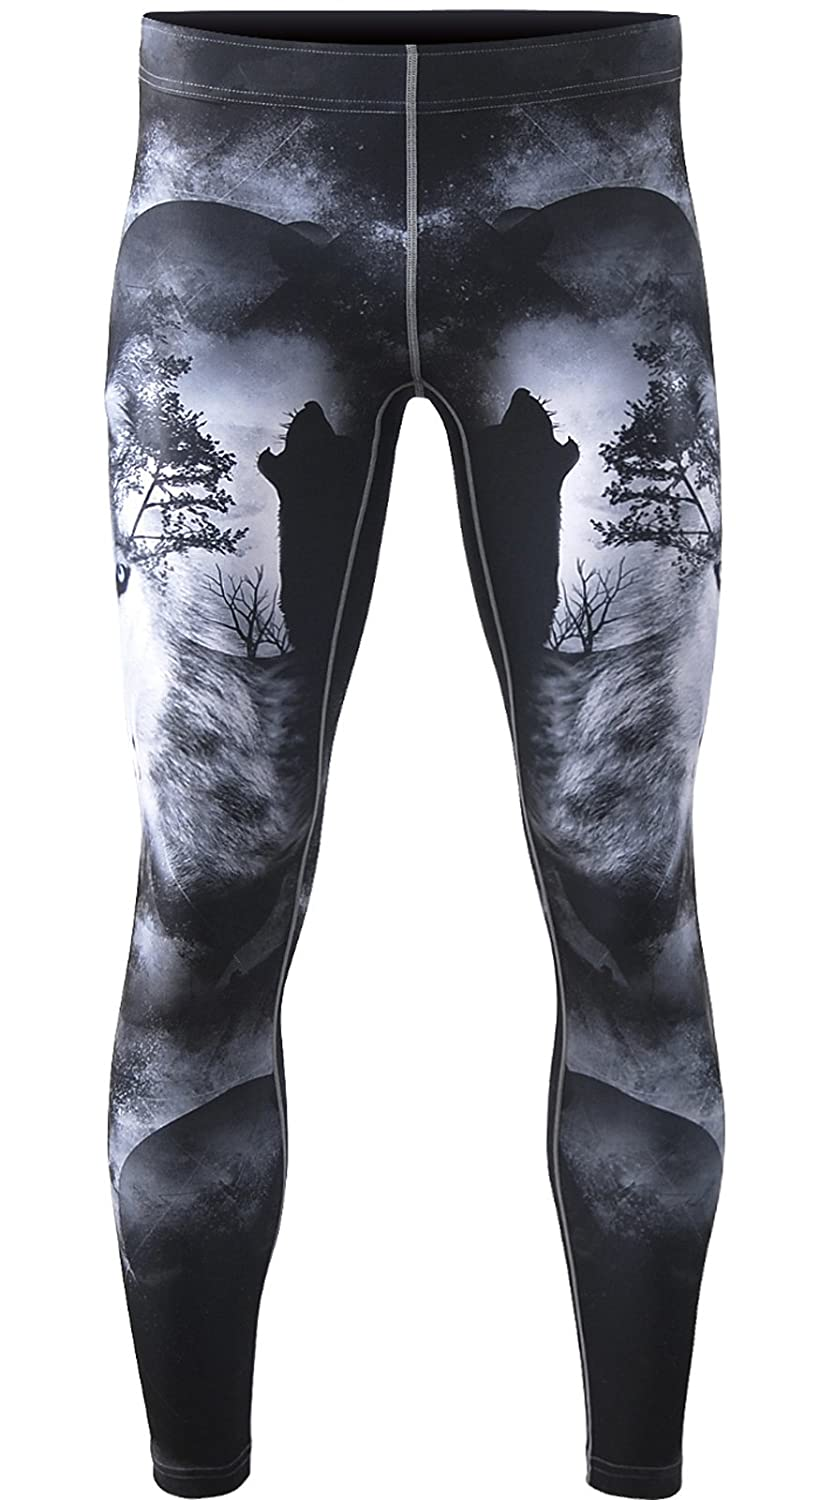 652b5a33c9 Doesn\'t it seem like Pants for juniors and Mens are either made to be  fashionable or functional but never both? ZIPRAVS thinks that the same running  pants ...